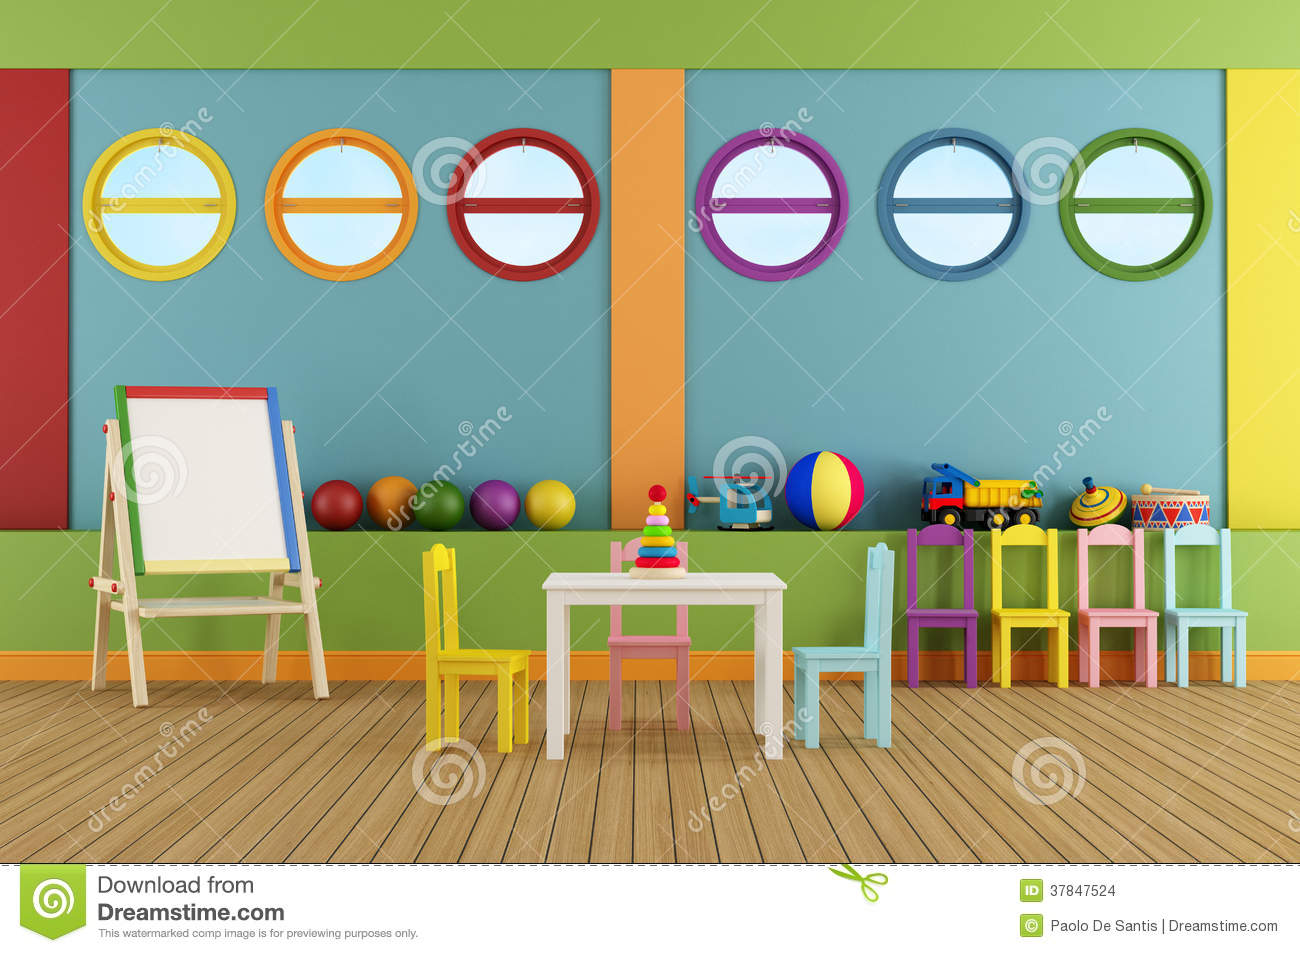 empty preschool classroom stock illustration. illustration of